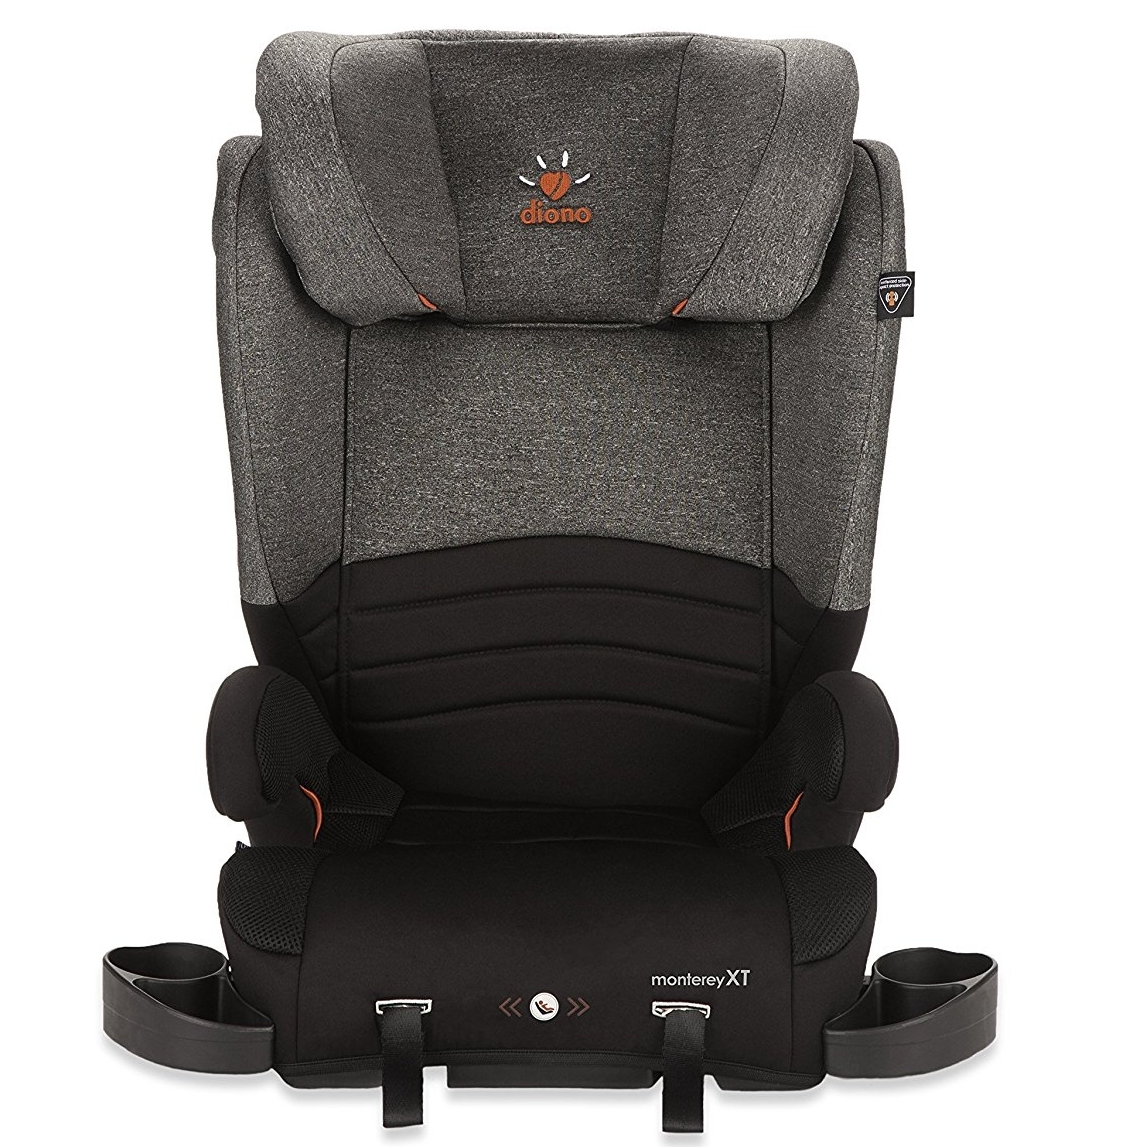 Diono Monterey XT High Back Booster Seat - Heather